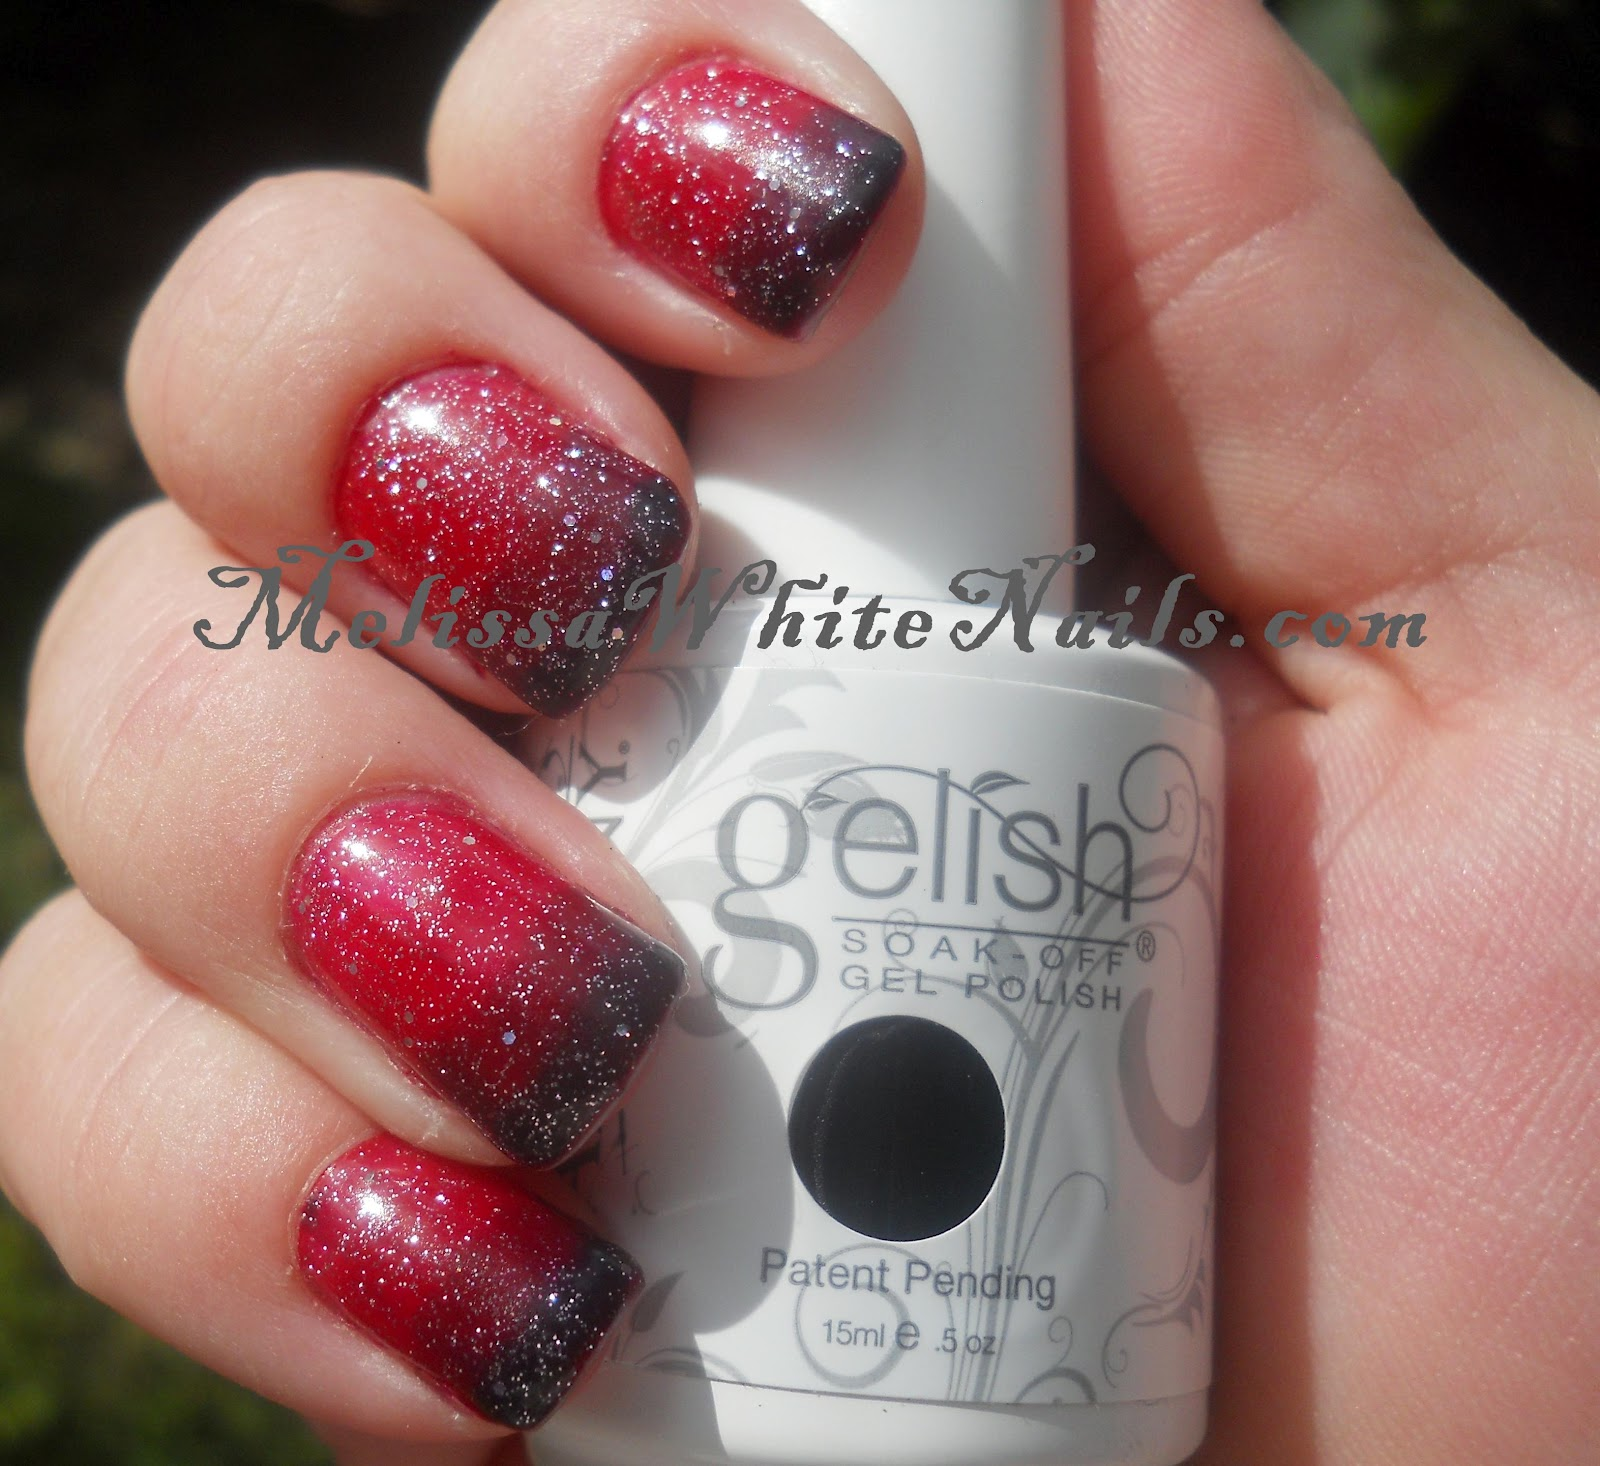 Adventures of a Nail Tech: Gelish Manicures!